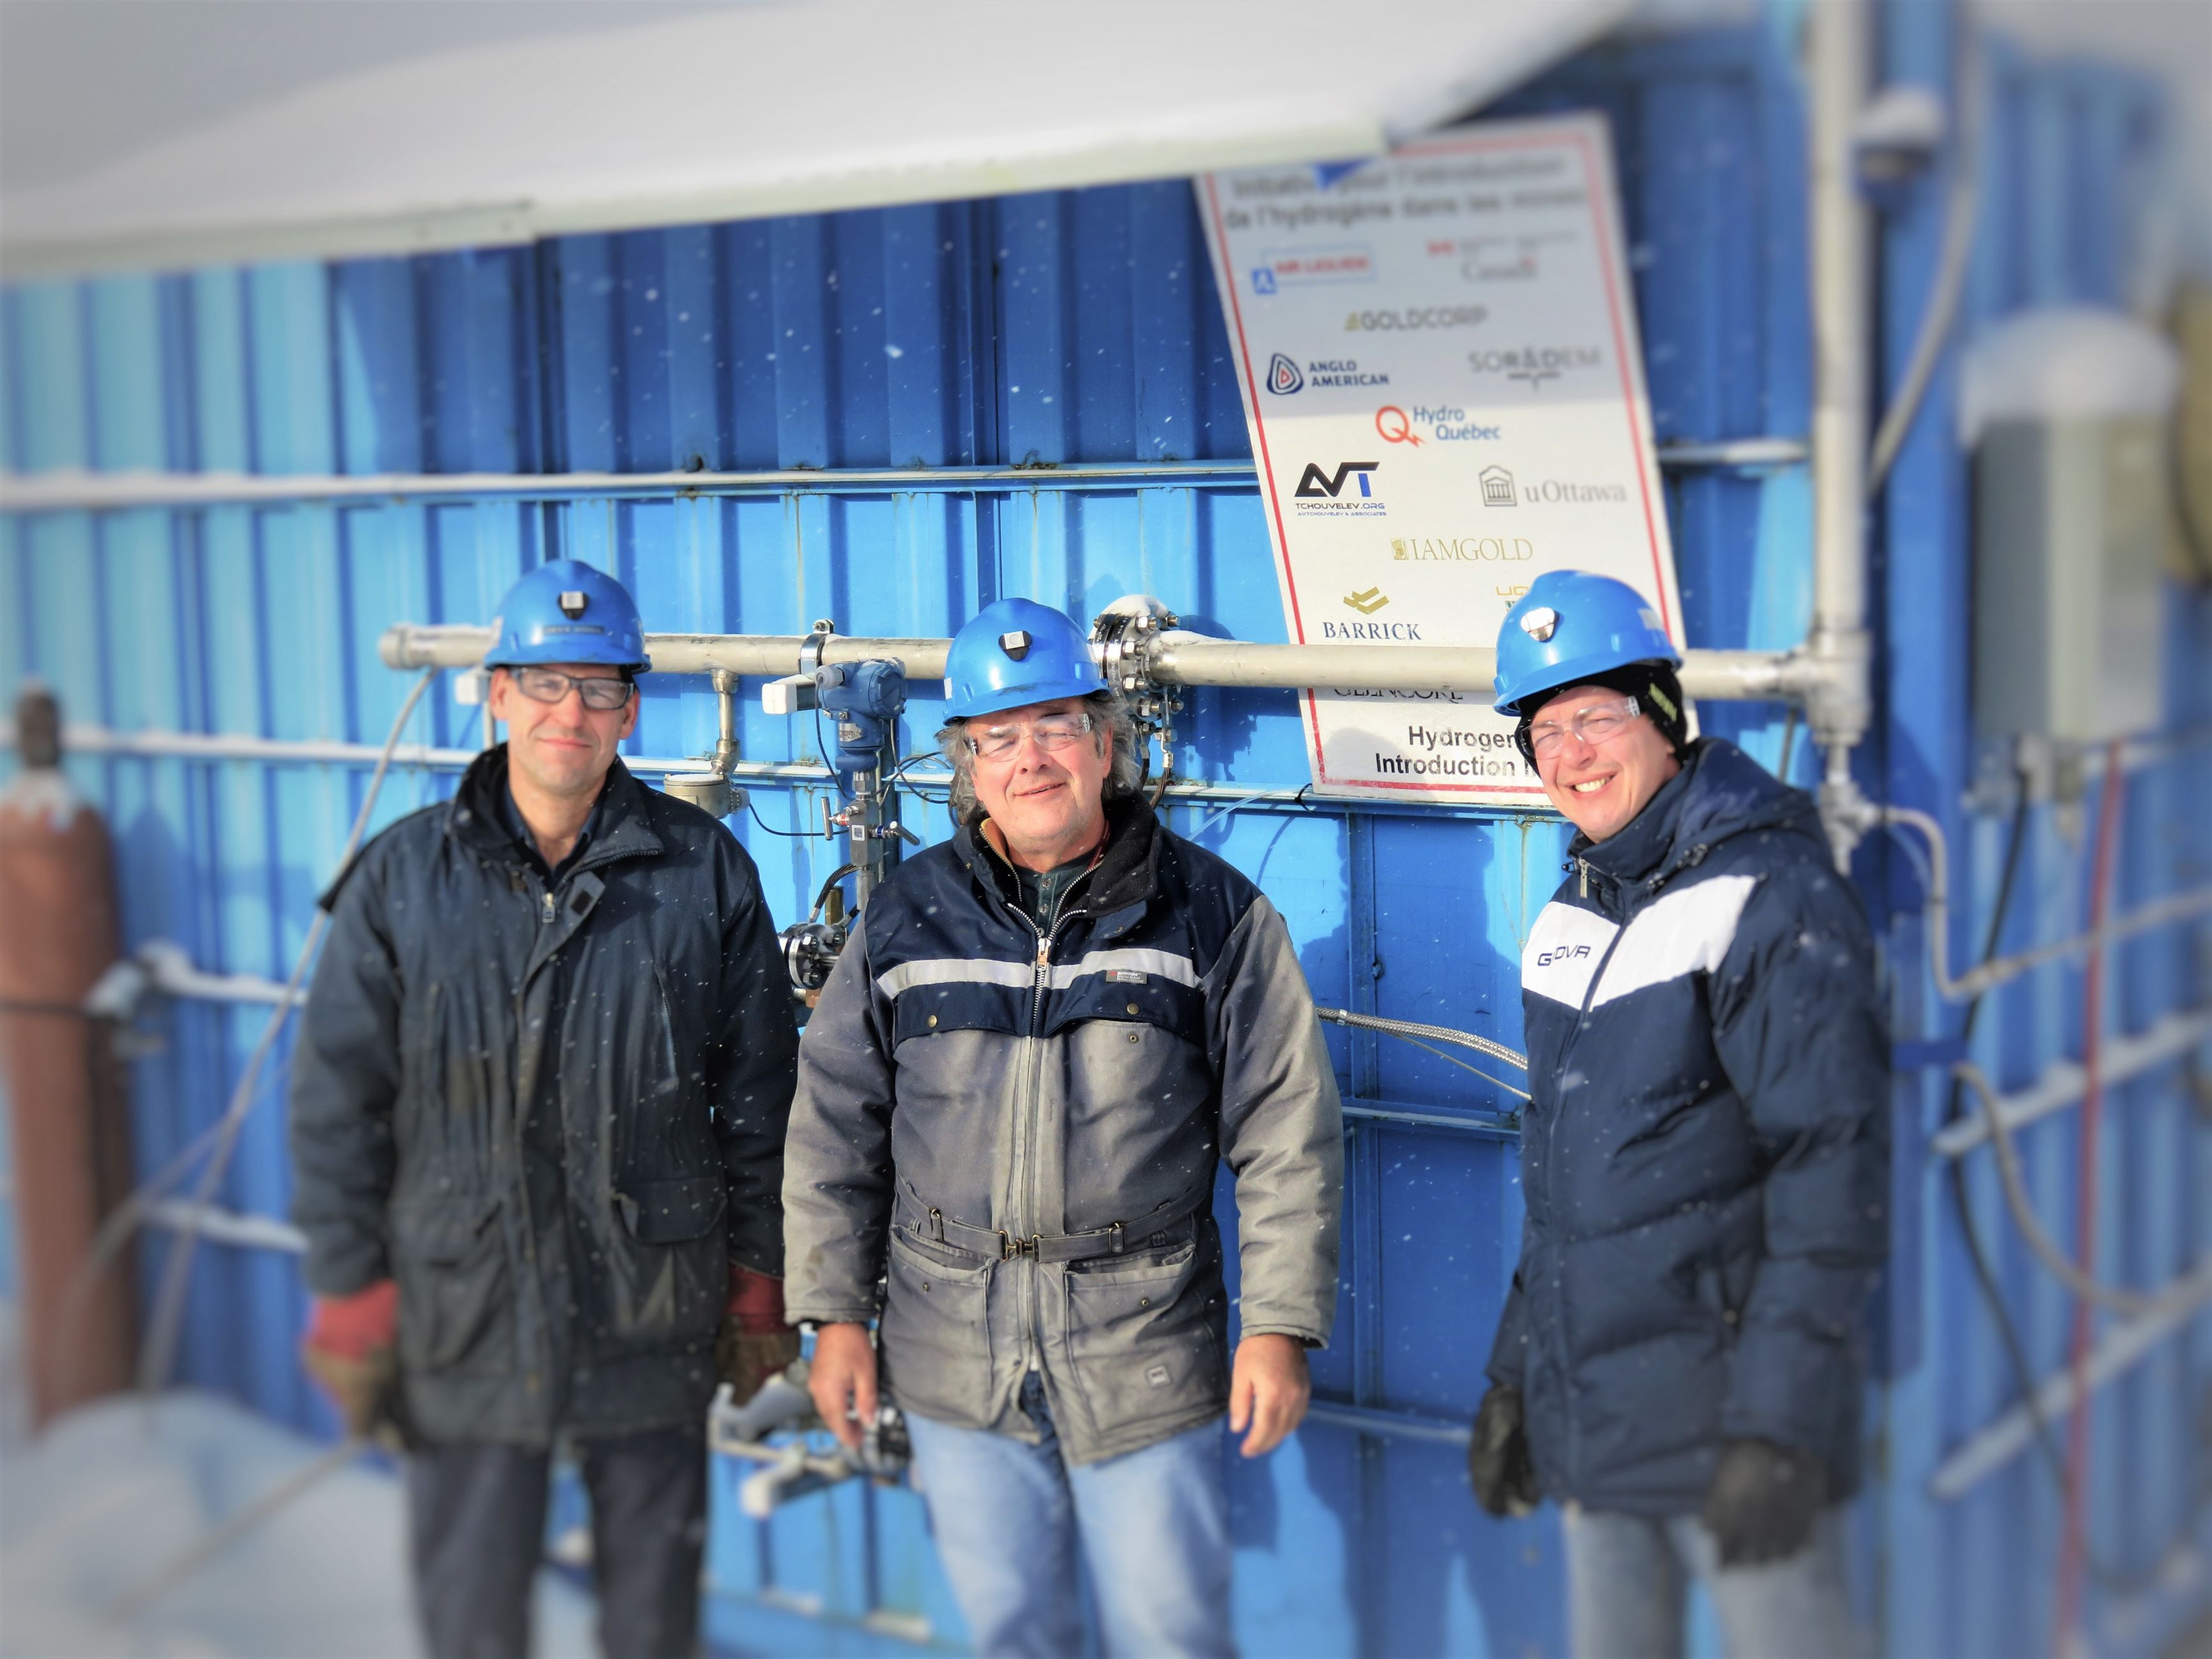 Part of the research team in front of the hydrogen test chamber in Val d'Or, Quebec.